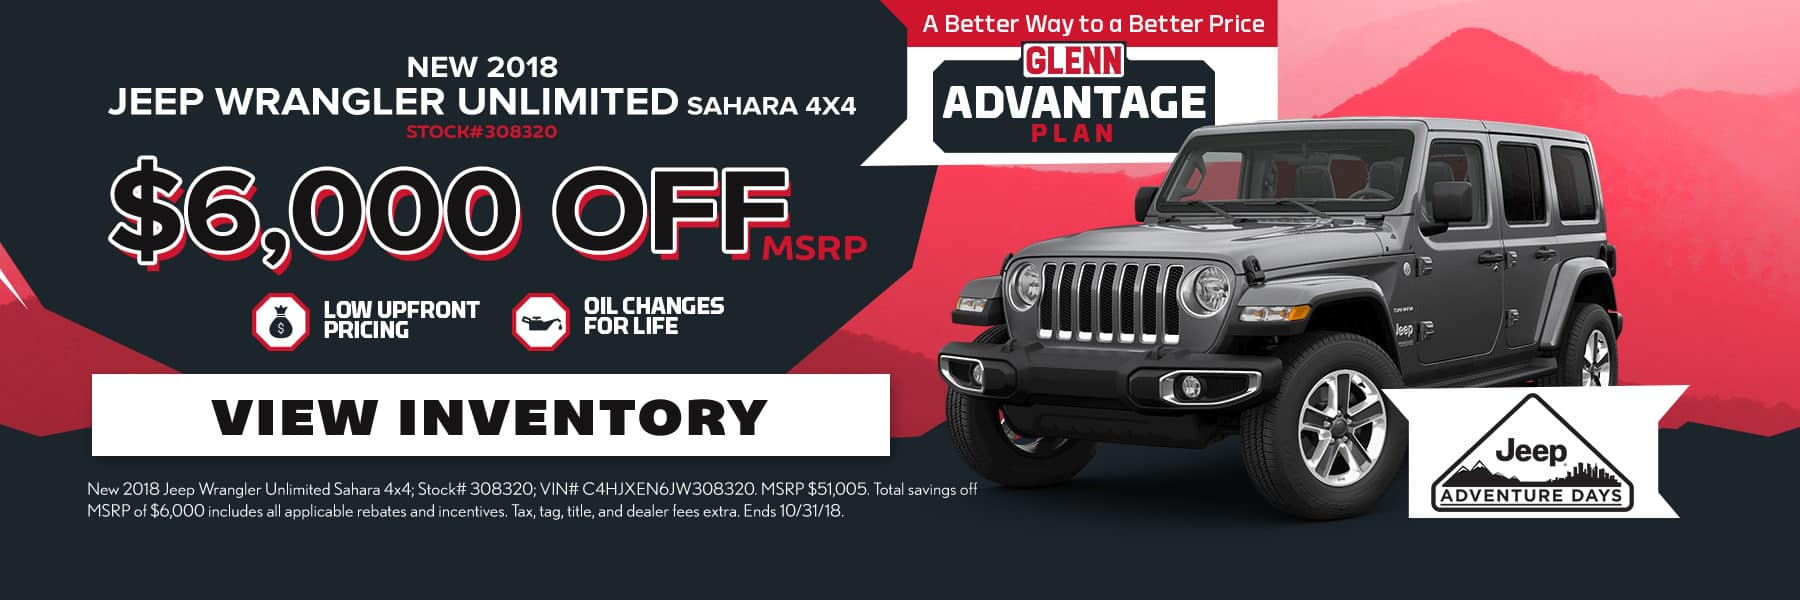 2018 Jeep Wrangler Unlimited Offer Oct18